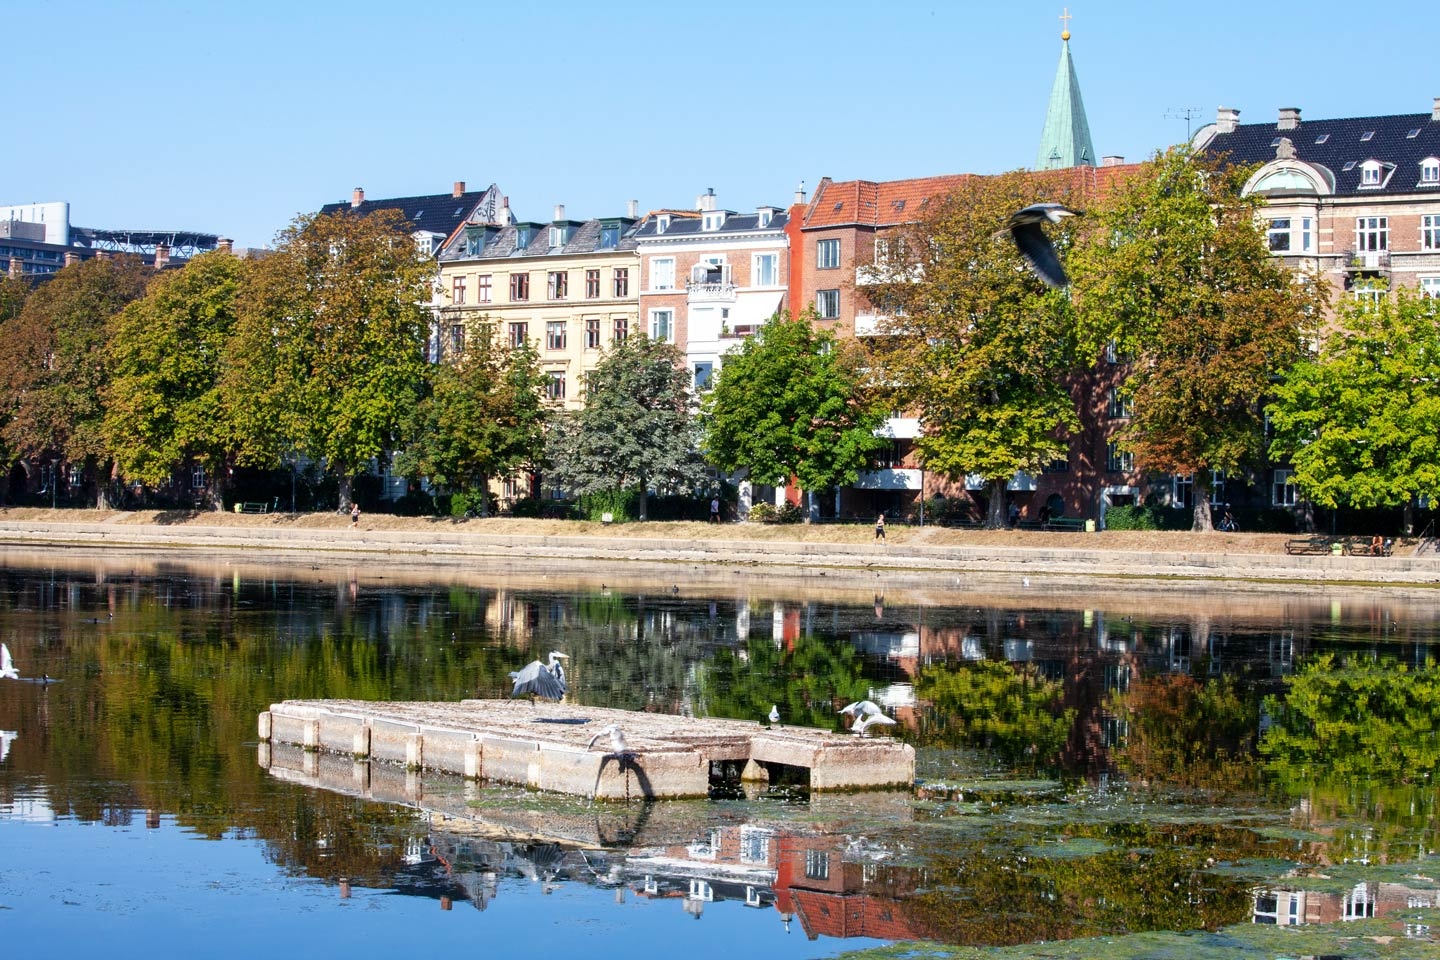 One of the three famous Lakes that sit on the Western edge of central Copenhagen.